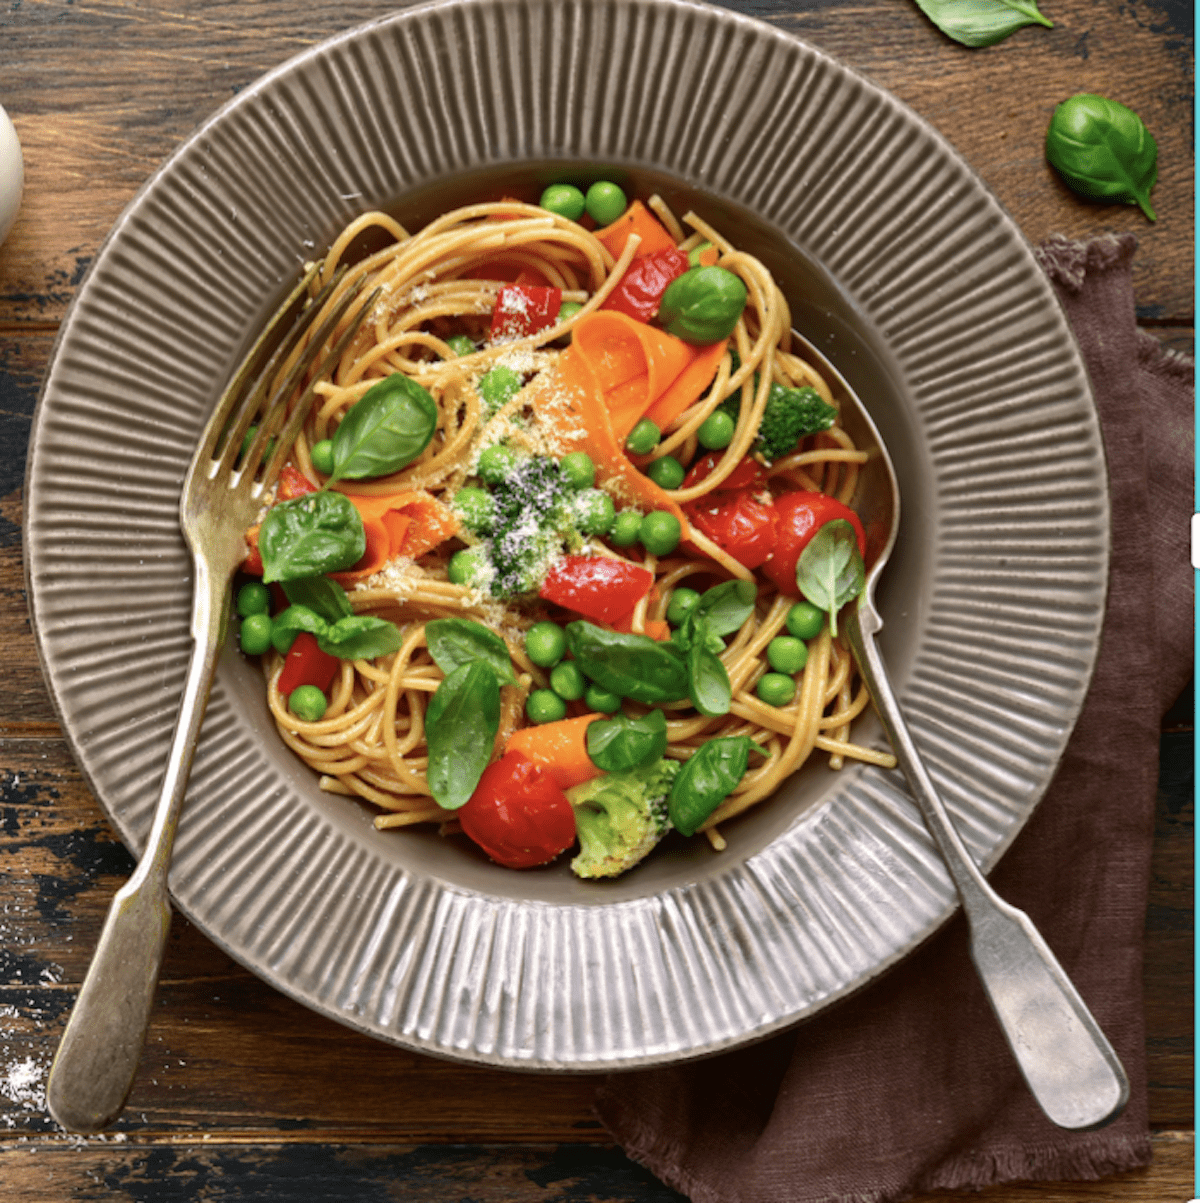 Delicious Pasta With Veggies